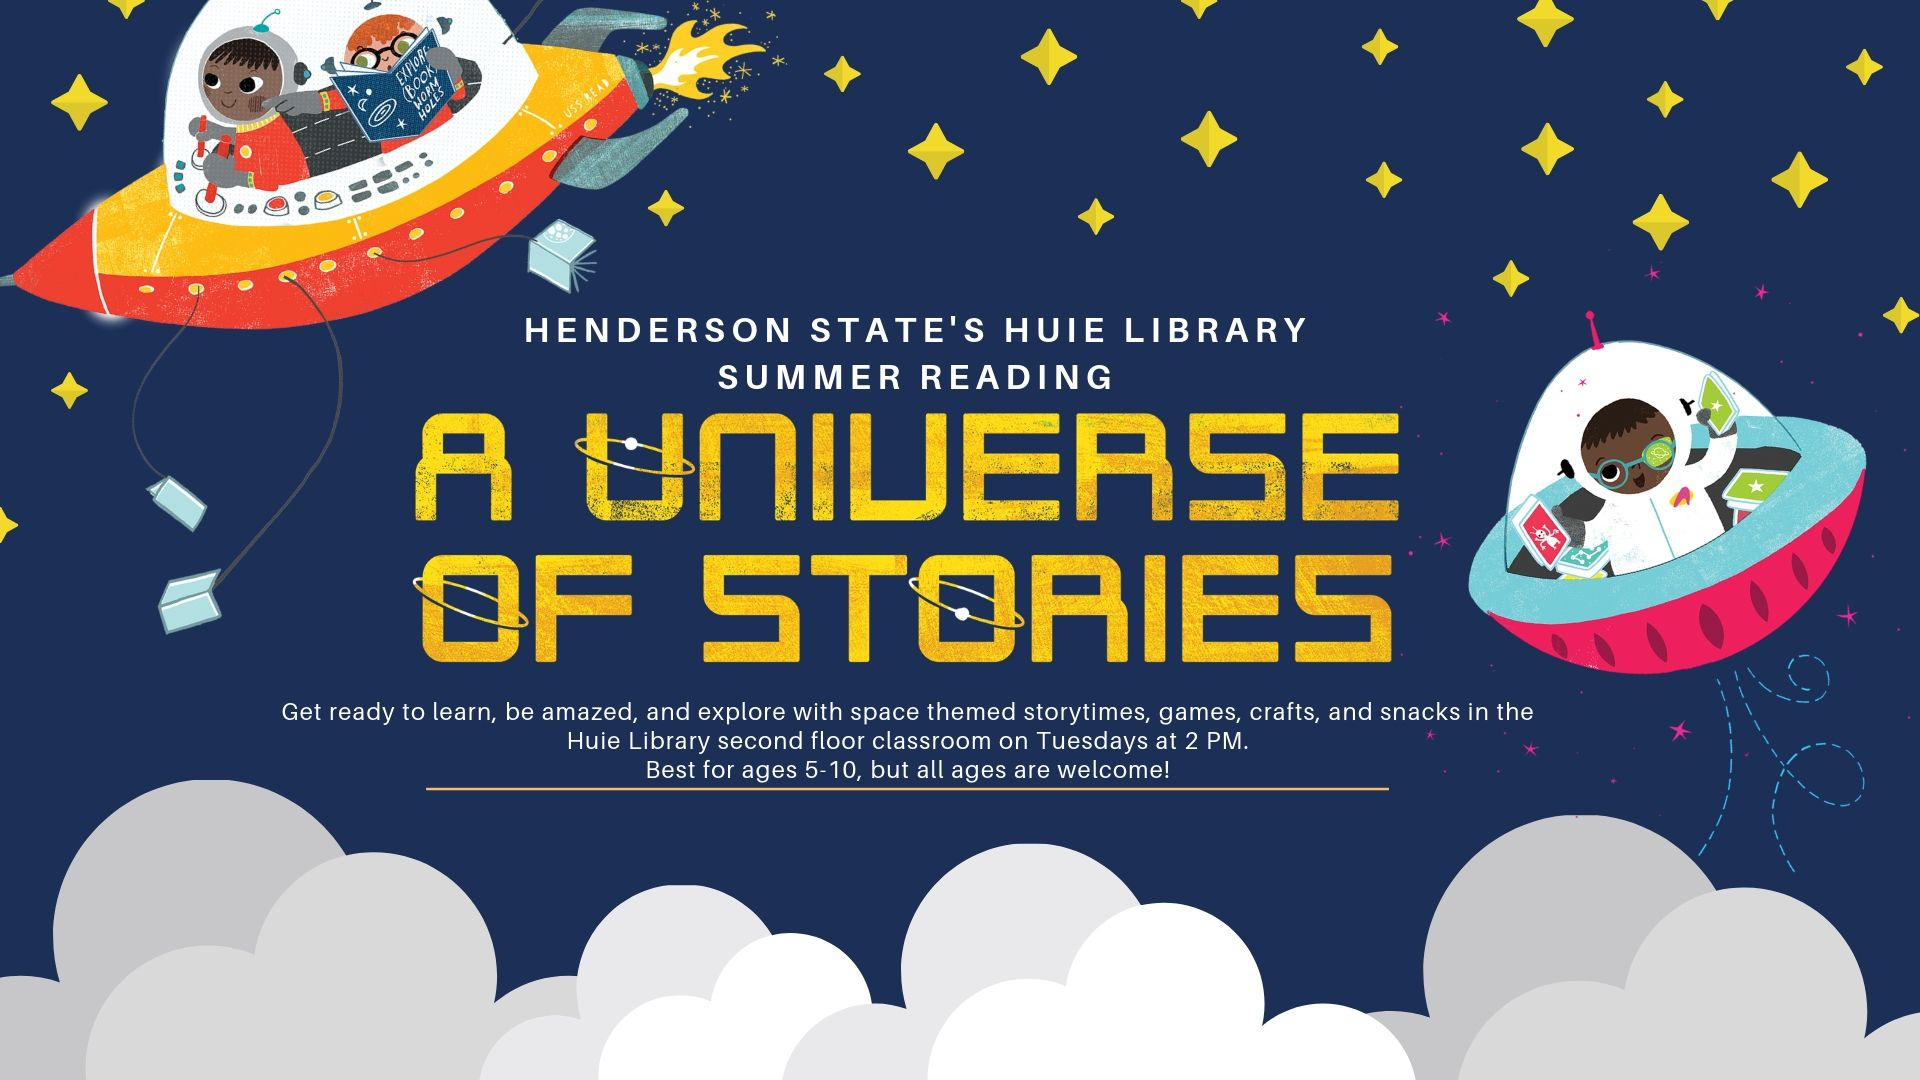 """Henderson State's Huie Library Summer Reading. A Universe of Stories. Get ready to learn, be amazed, and explore with space themed storytimes, games, crafts, and snacks in the Huie Library second floor classroom on Tuesdays at 2 PM.  Best for ages 5-10, but all ages are welcome!"" With stars, clouds, and kids reading in space ships"